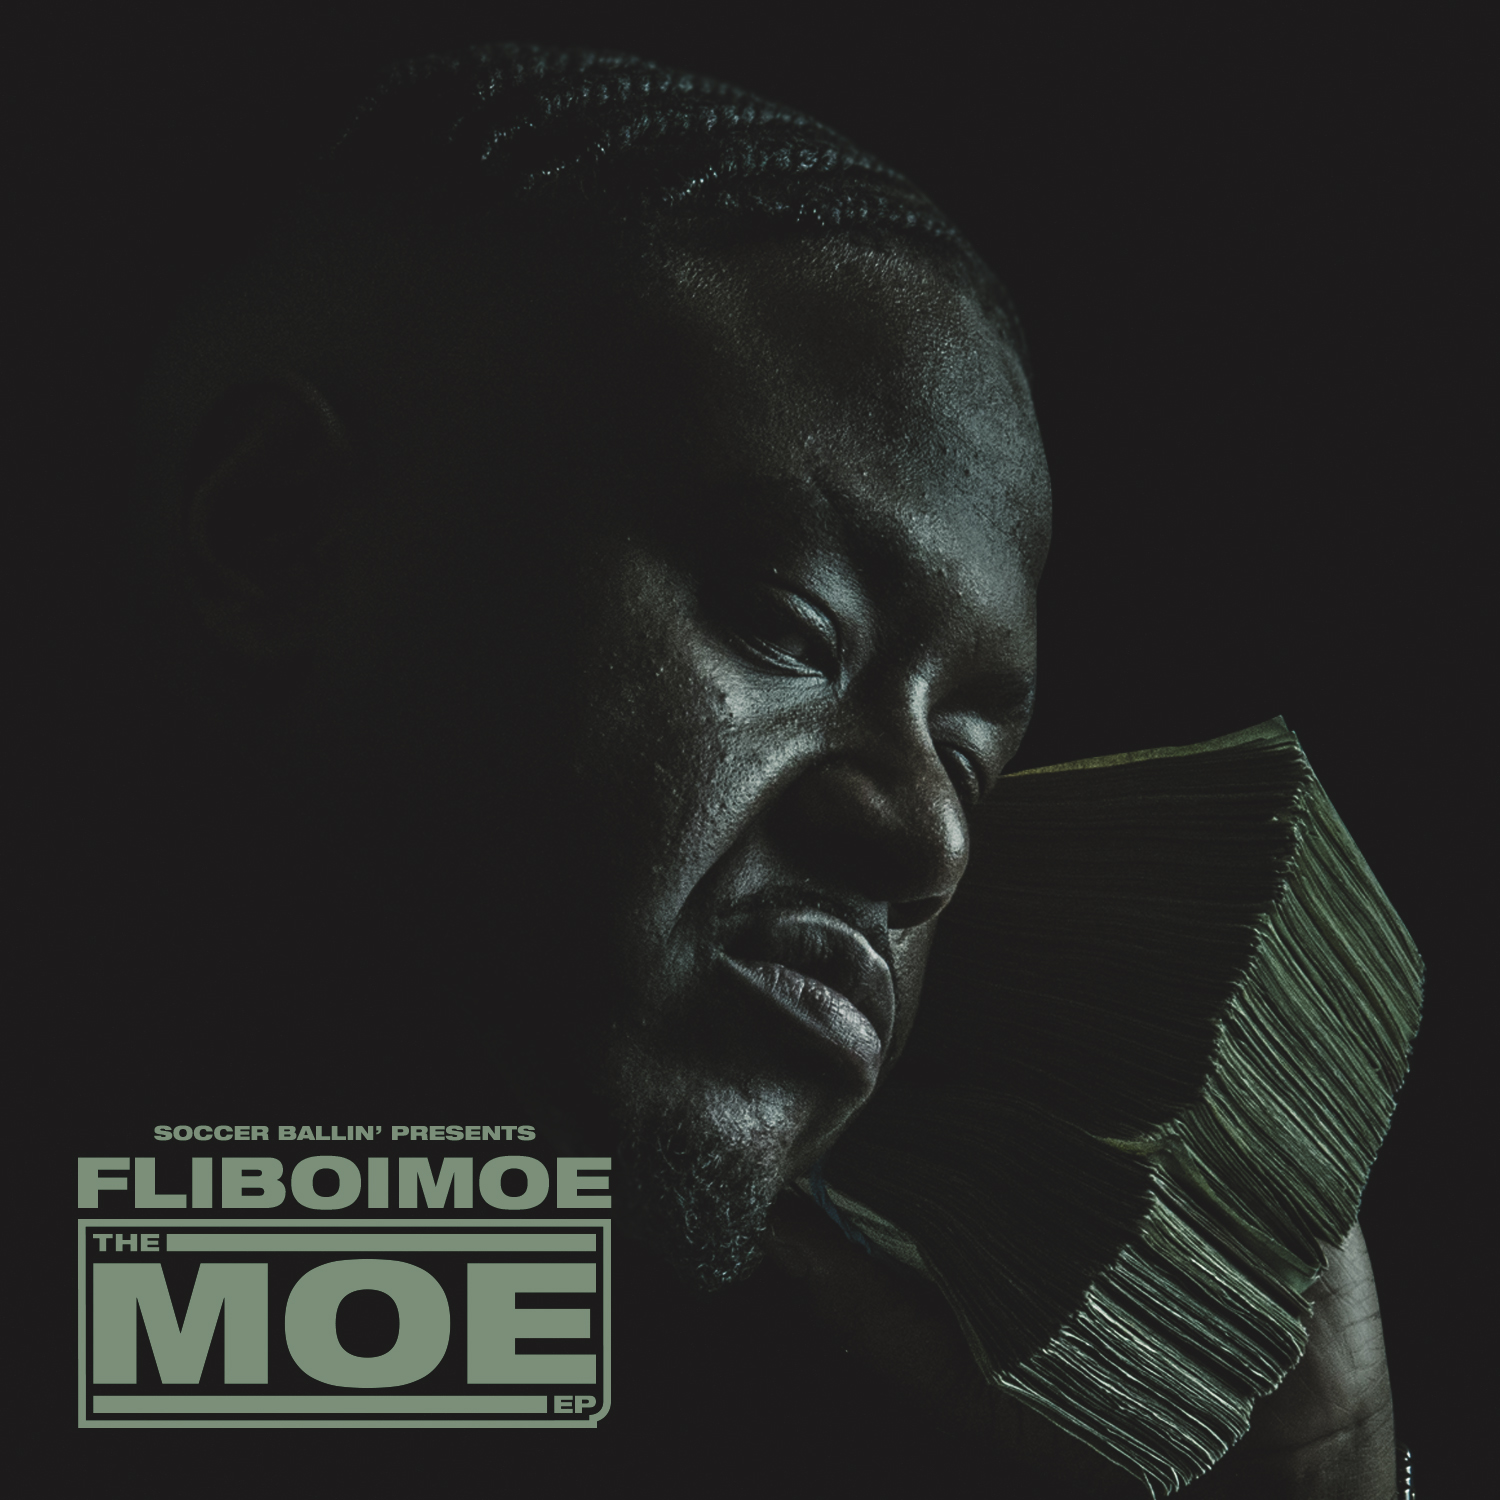 FLIBOIMOE – The MOE EP